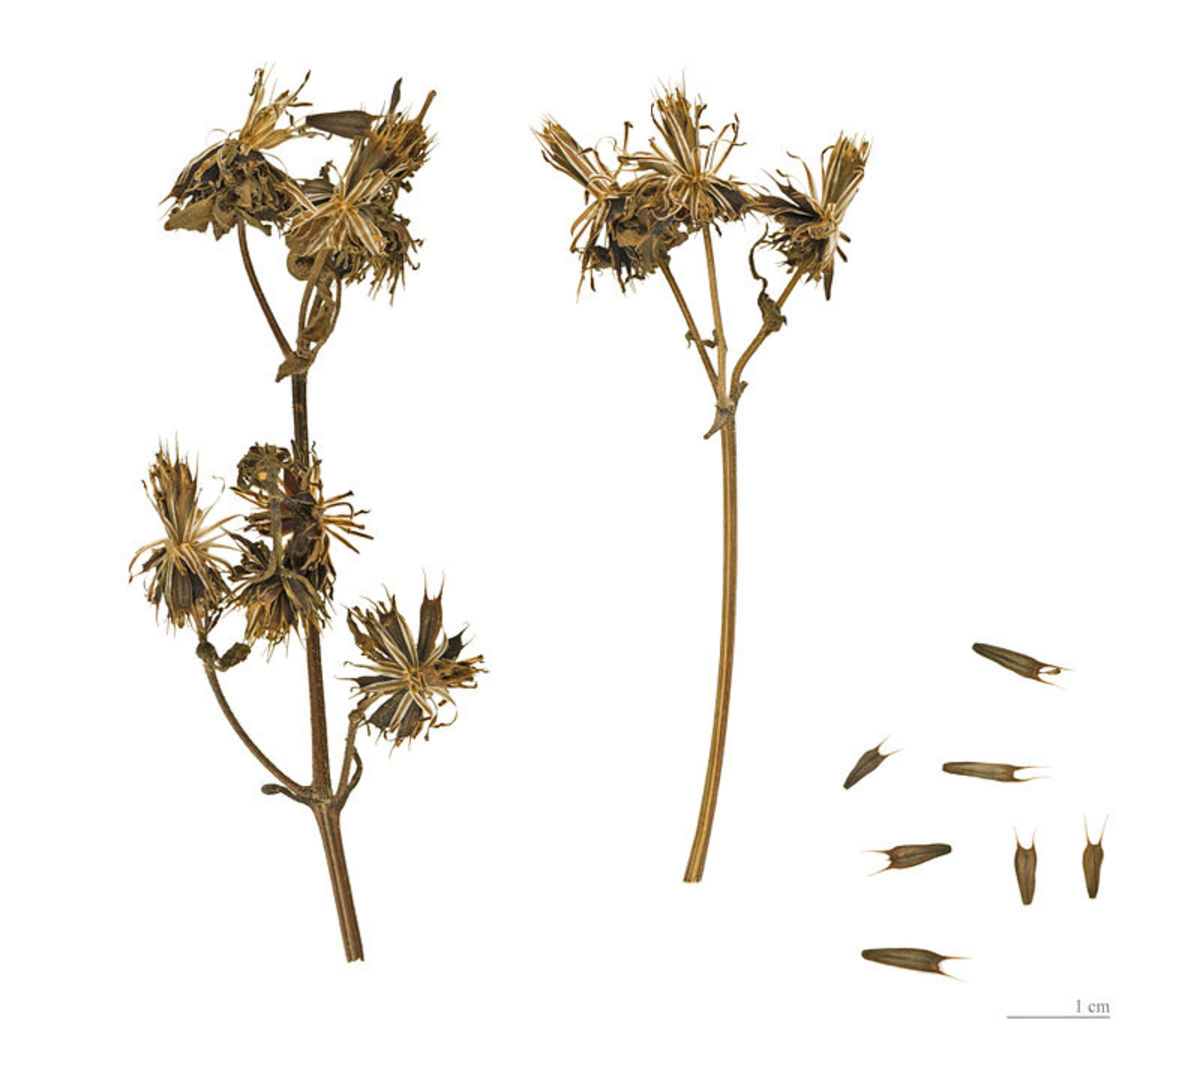 Seed Dispersal: How Do Plants Spread Their Seeds? | Owlcation